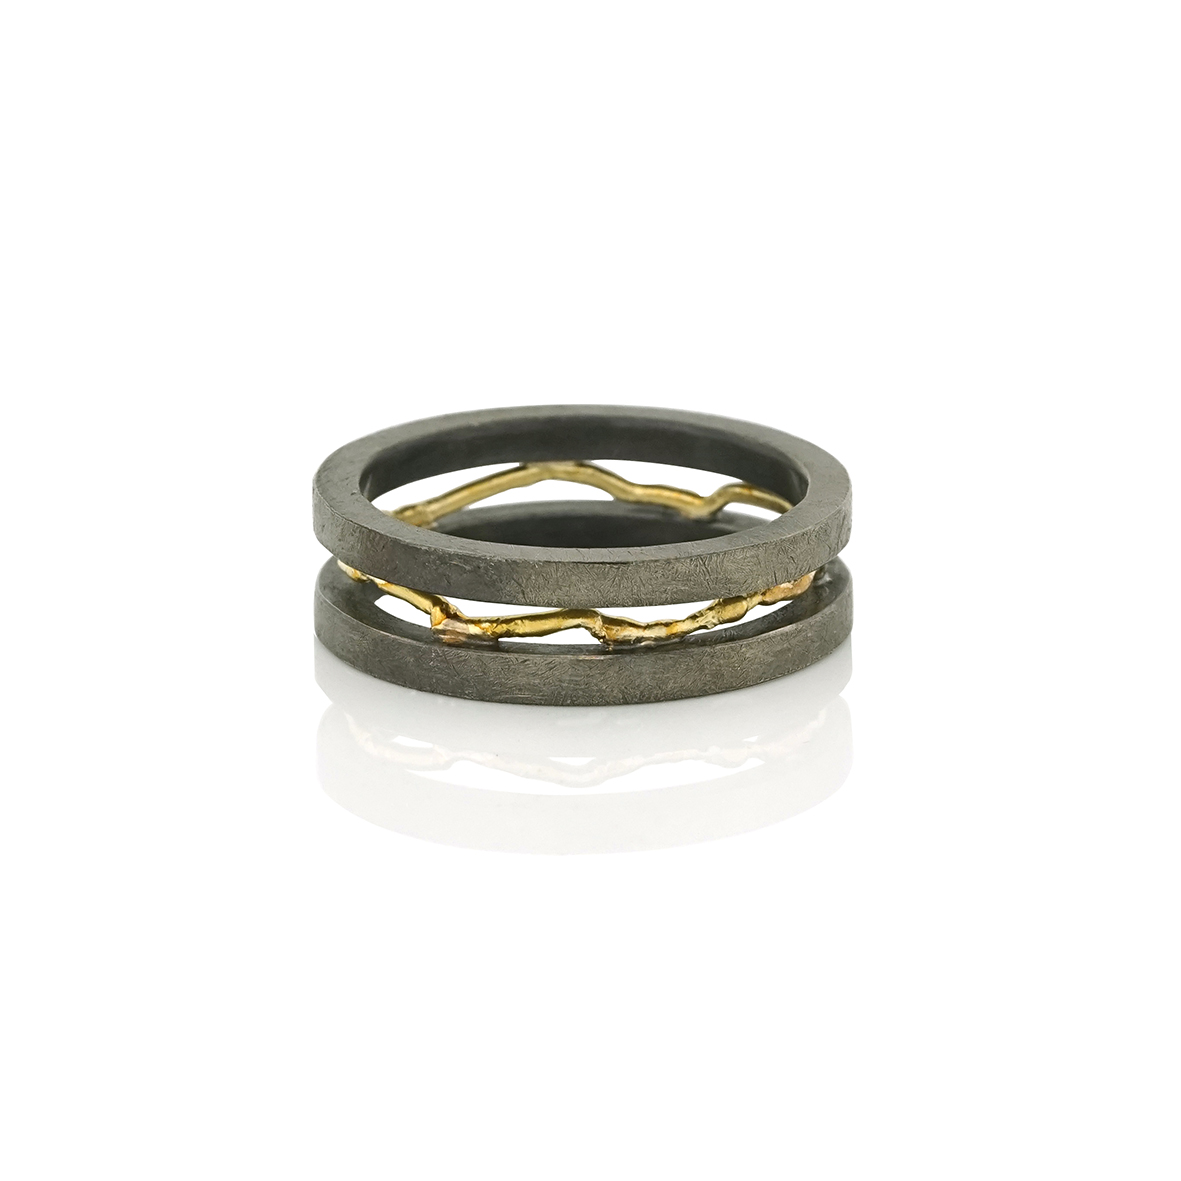 https://myshop.s3-external-3.amazonaws.com/shop5863800.pictures.shop5784300_pictures_ring-met-draad.jpg